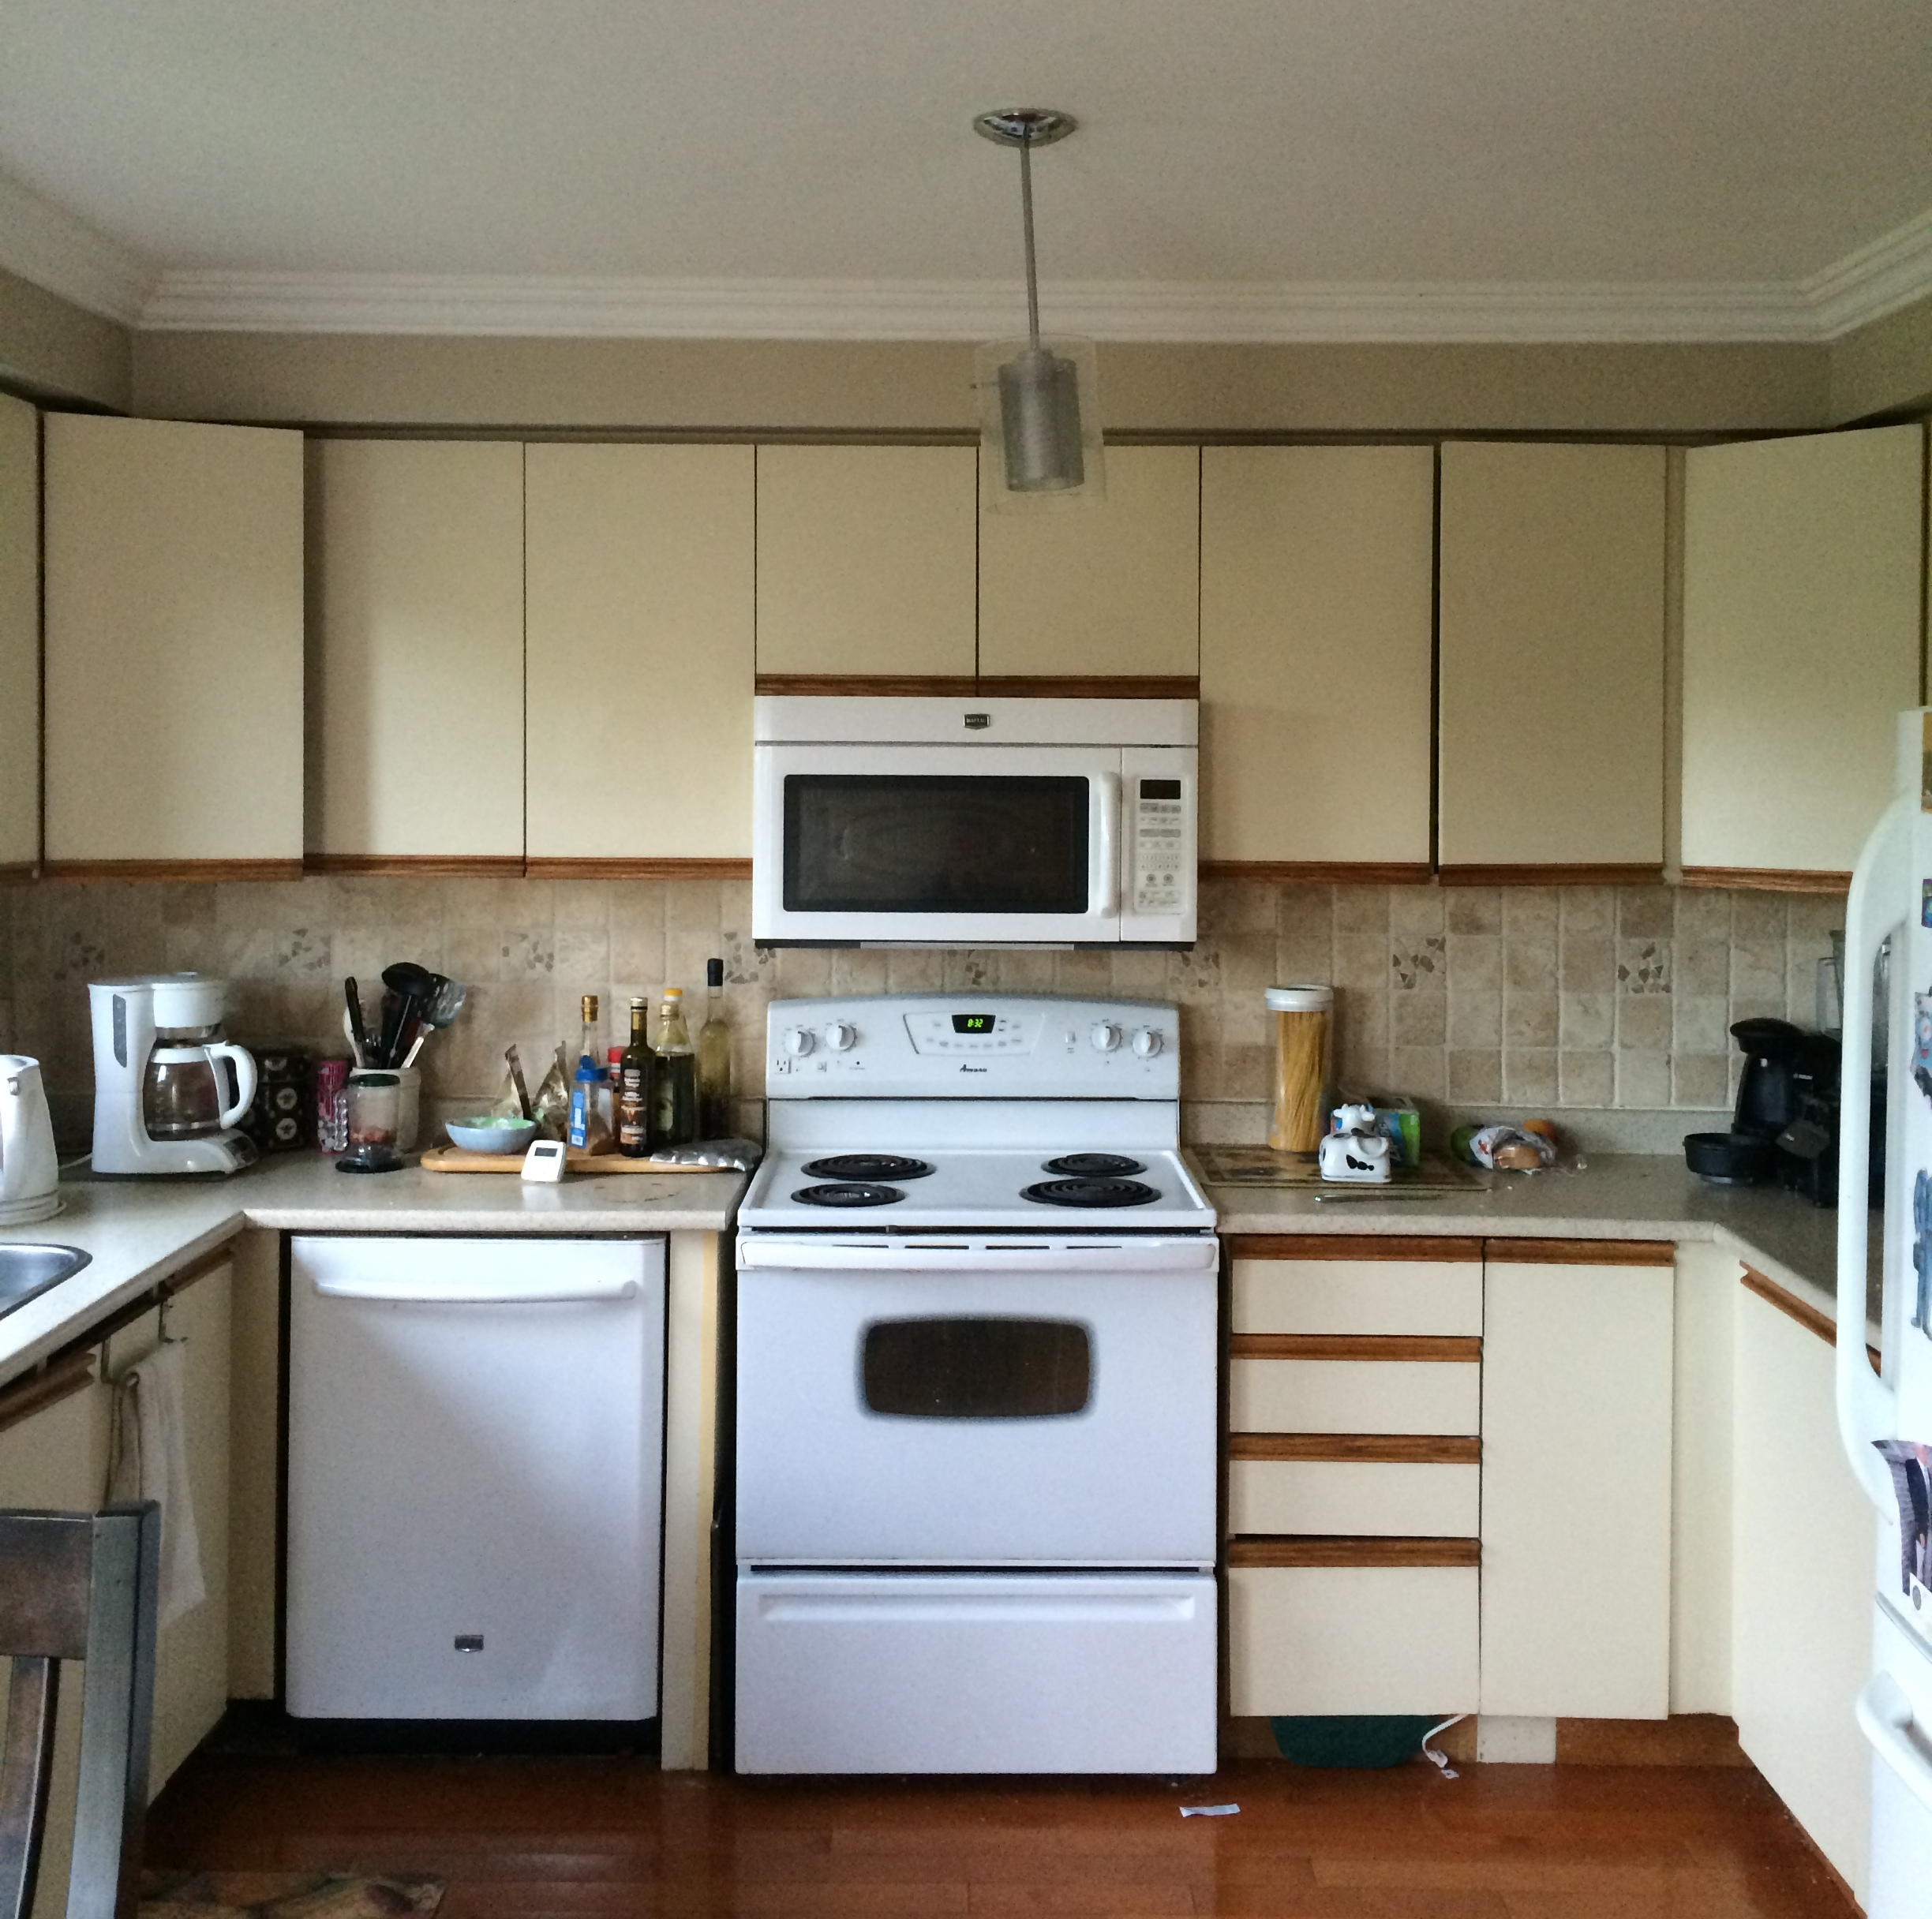 Canada Kitchen Appliances: A Refreshing IKEA Facelift For A Canadian Kitchen